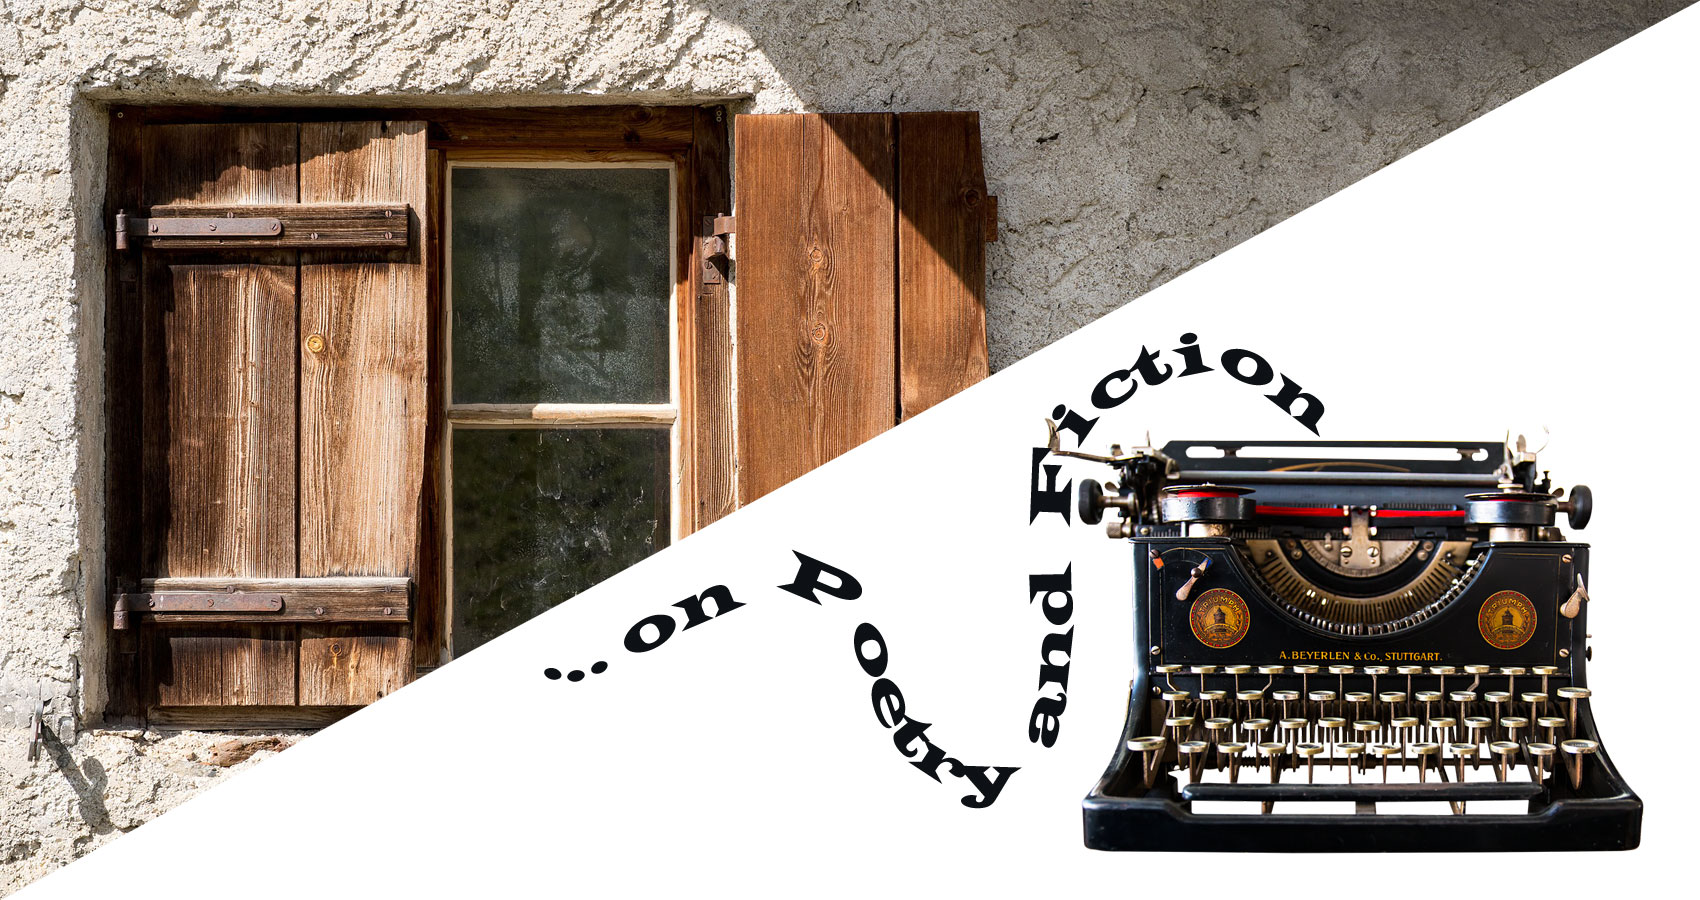 """...on Poetry and Fiction - Just """"One Word"""" Away (""""WINDOW""""), editorial by Phyllis P. Colucci at Spillwords.com"""